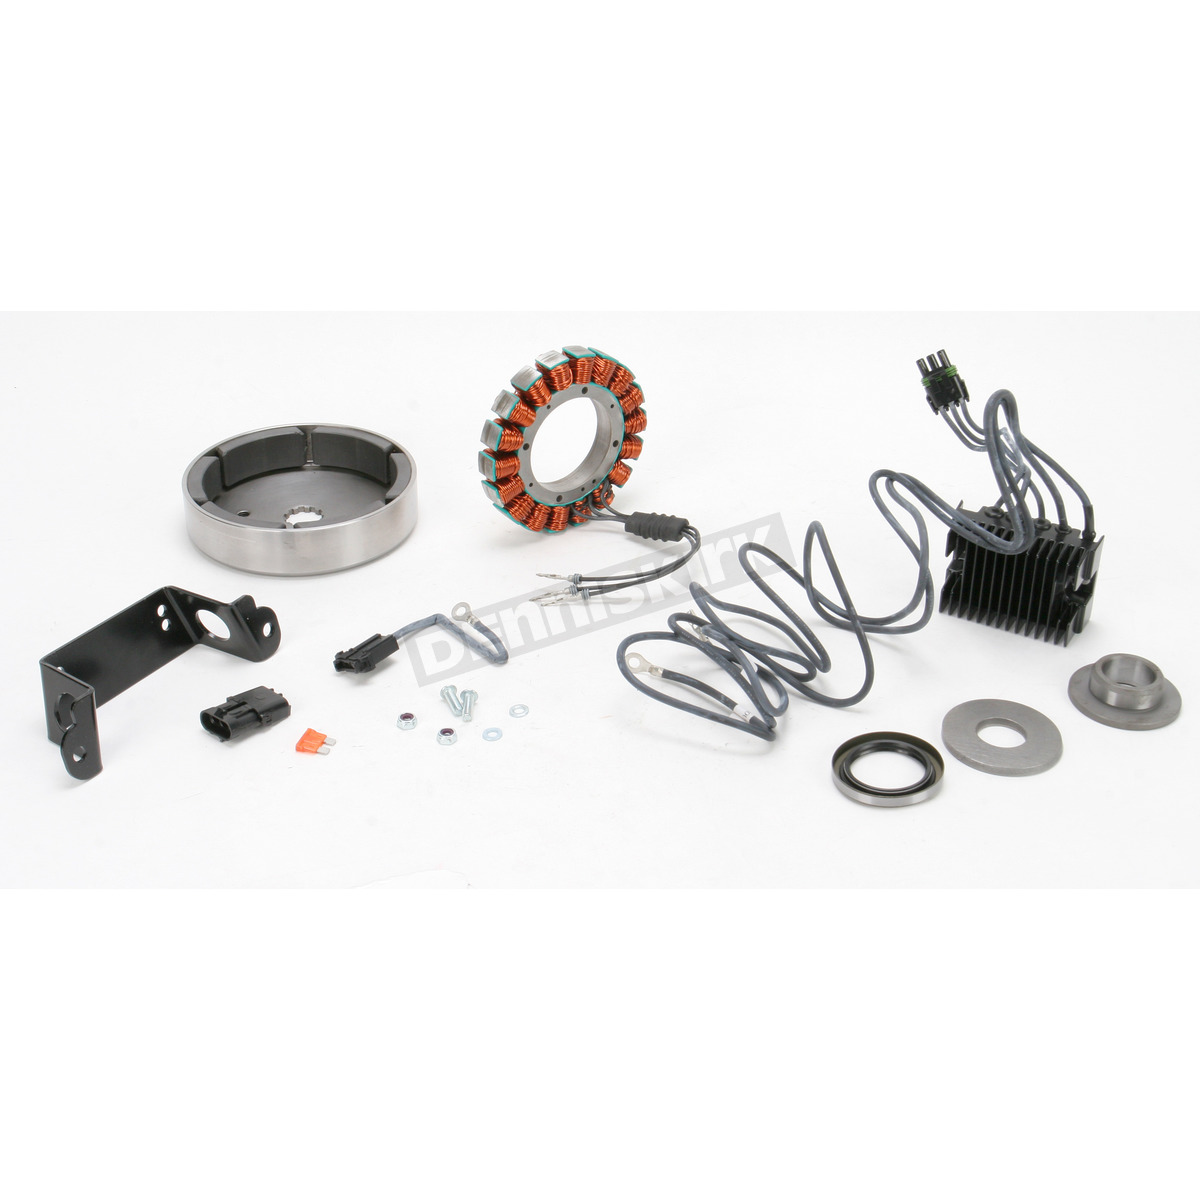 Compufire 40 Amp 3 Phase Charging System 55570 Harley Davidson Compu Fire Ignition Wiring Diagram